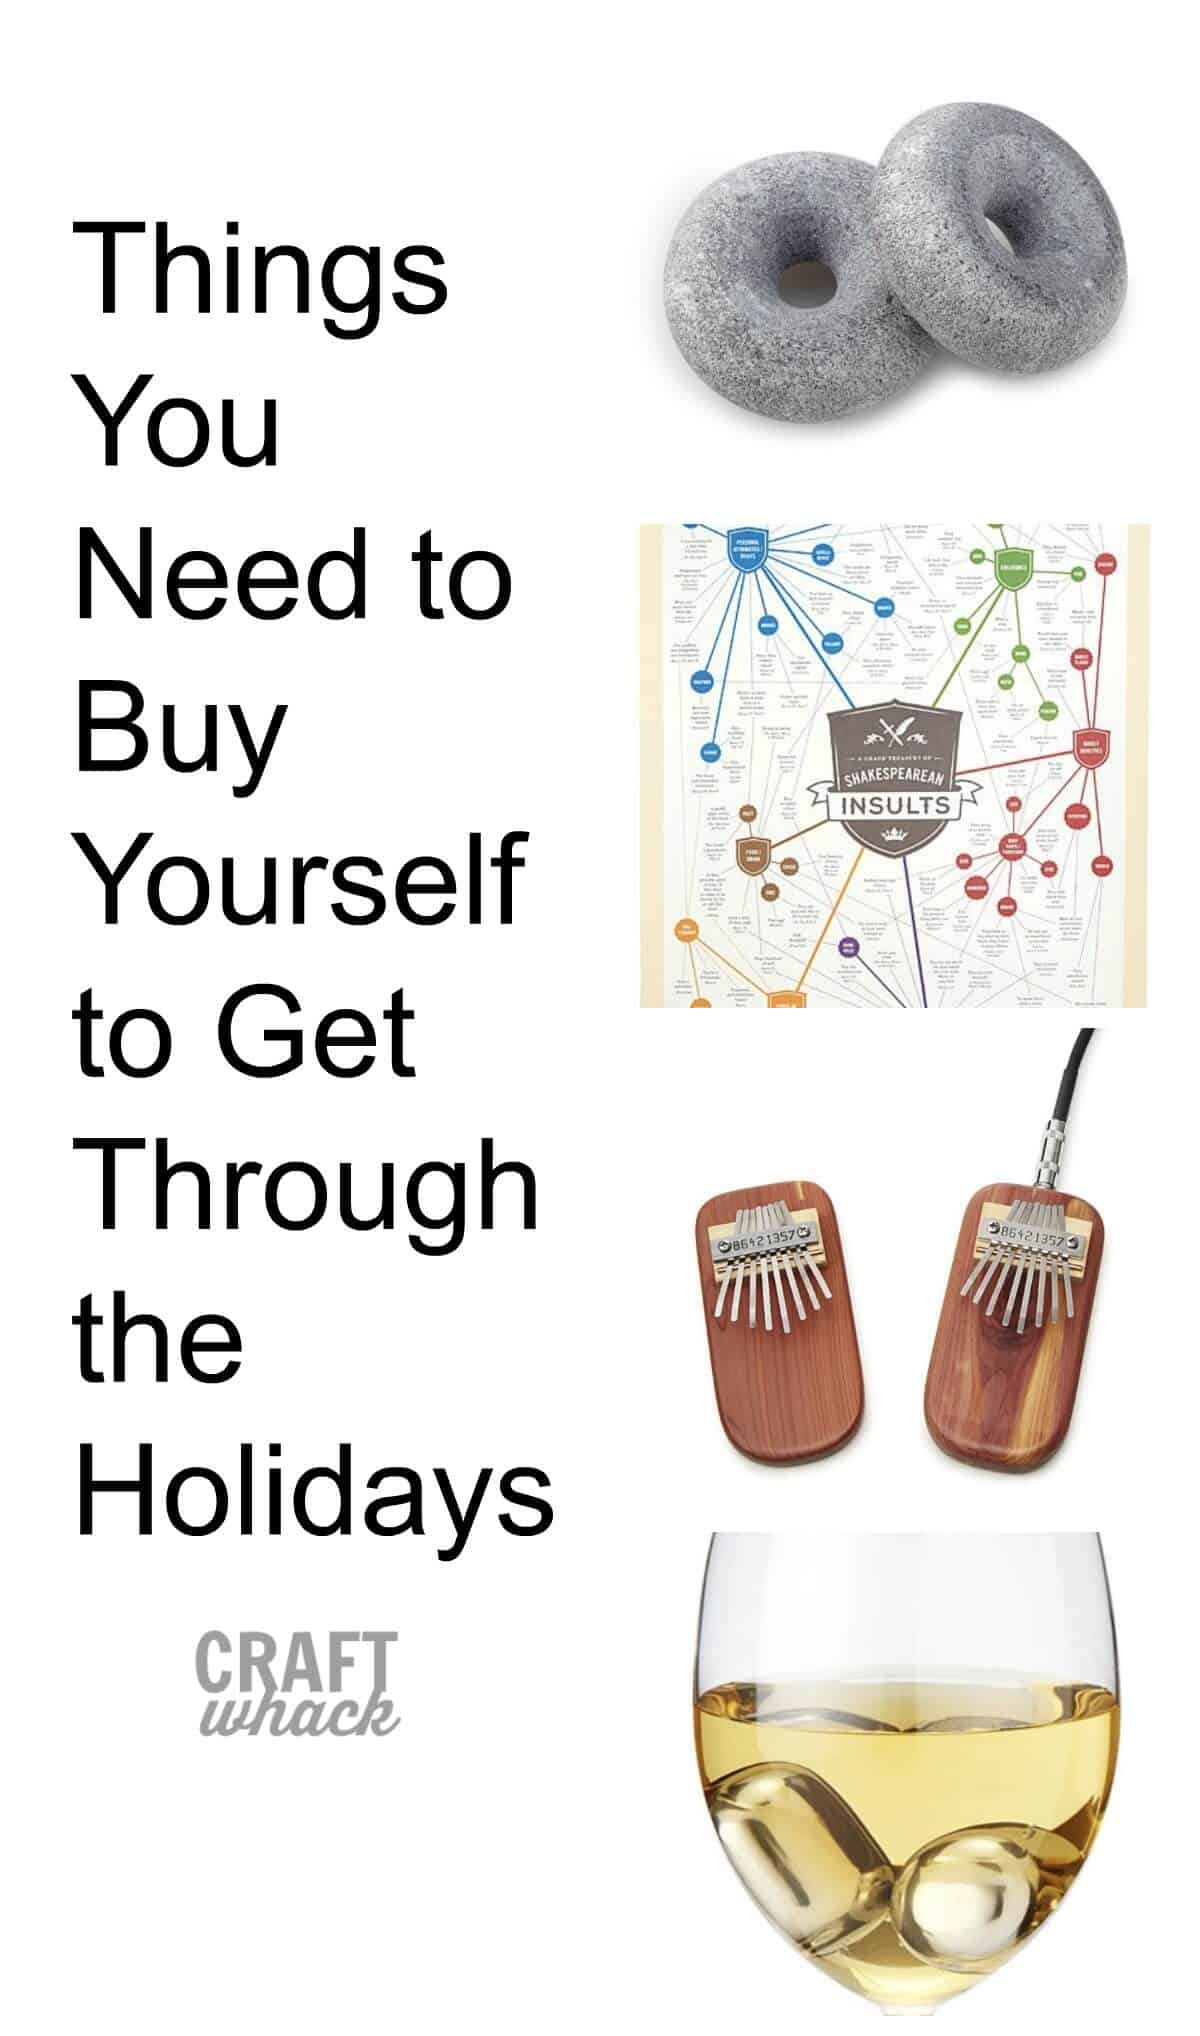 Awesome gifts to buy yourself to get through the holidays :)